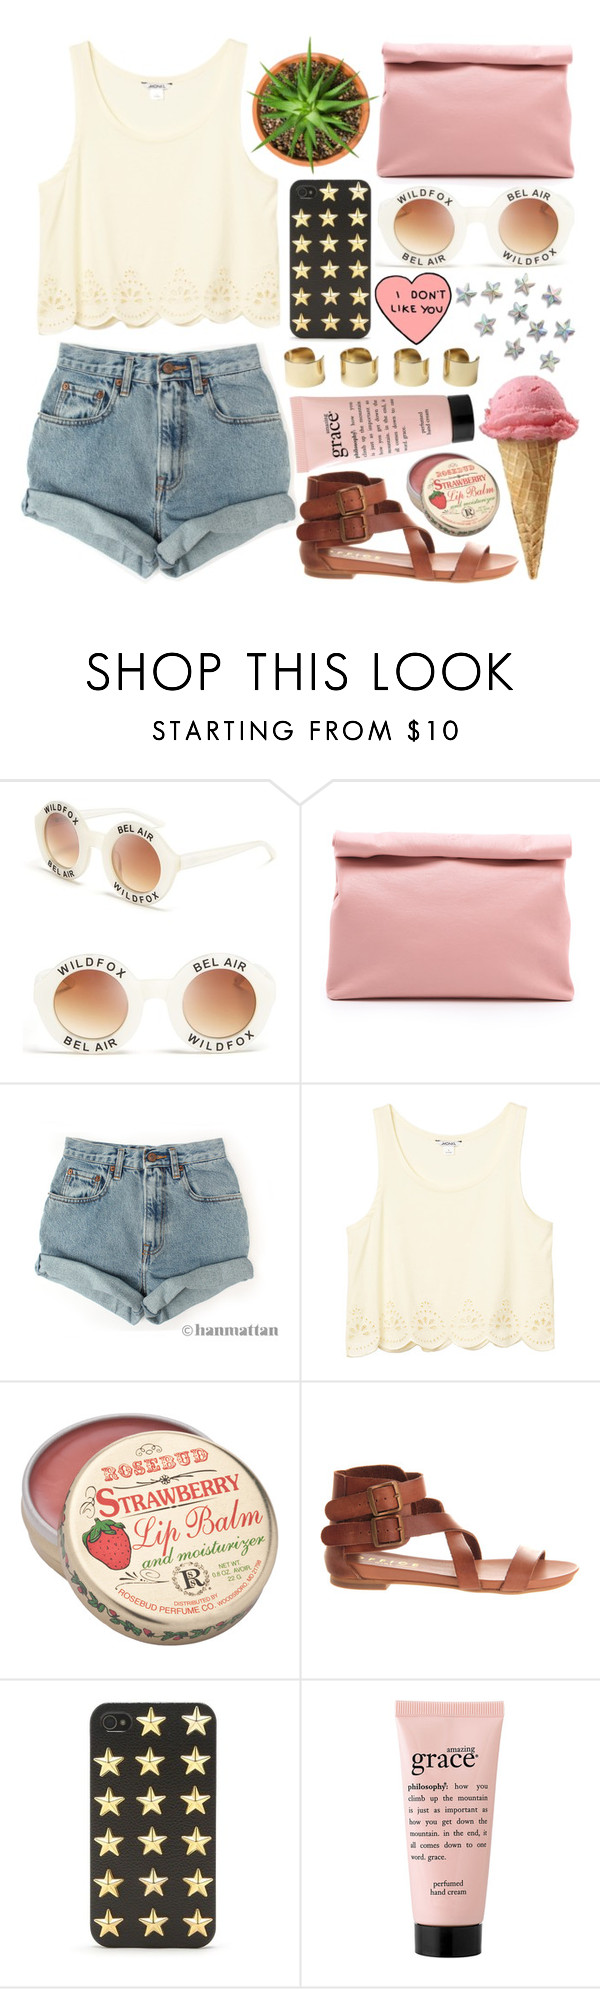 """""""trying to be cool"""" by silvanacavero ❤ liked on Polyvore featuring mode, Wildfox, Marie Turnor, Levi's, Monki, Office, With Love From CA, philosophy en Maison Margiela"""